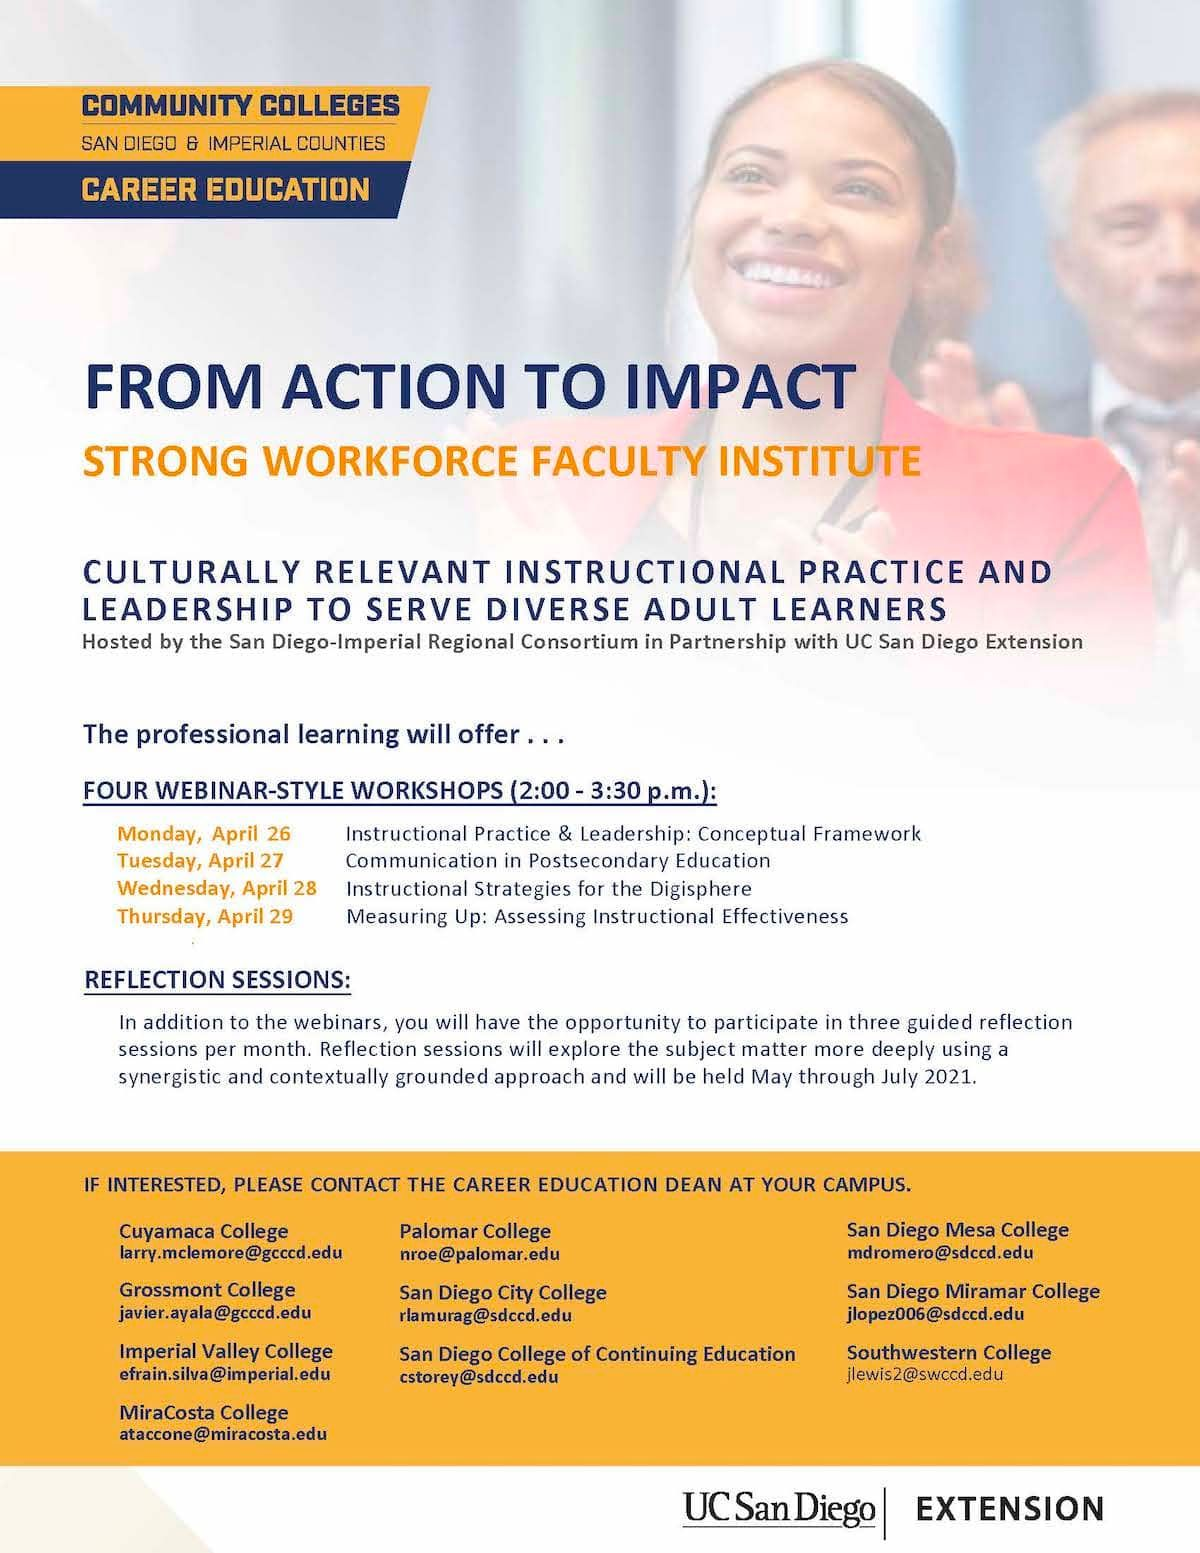 From Action to Impact Faculty Institute DRAFT_2021-03-04.jpg